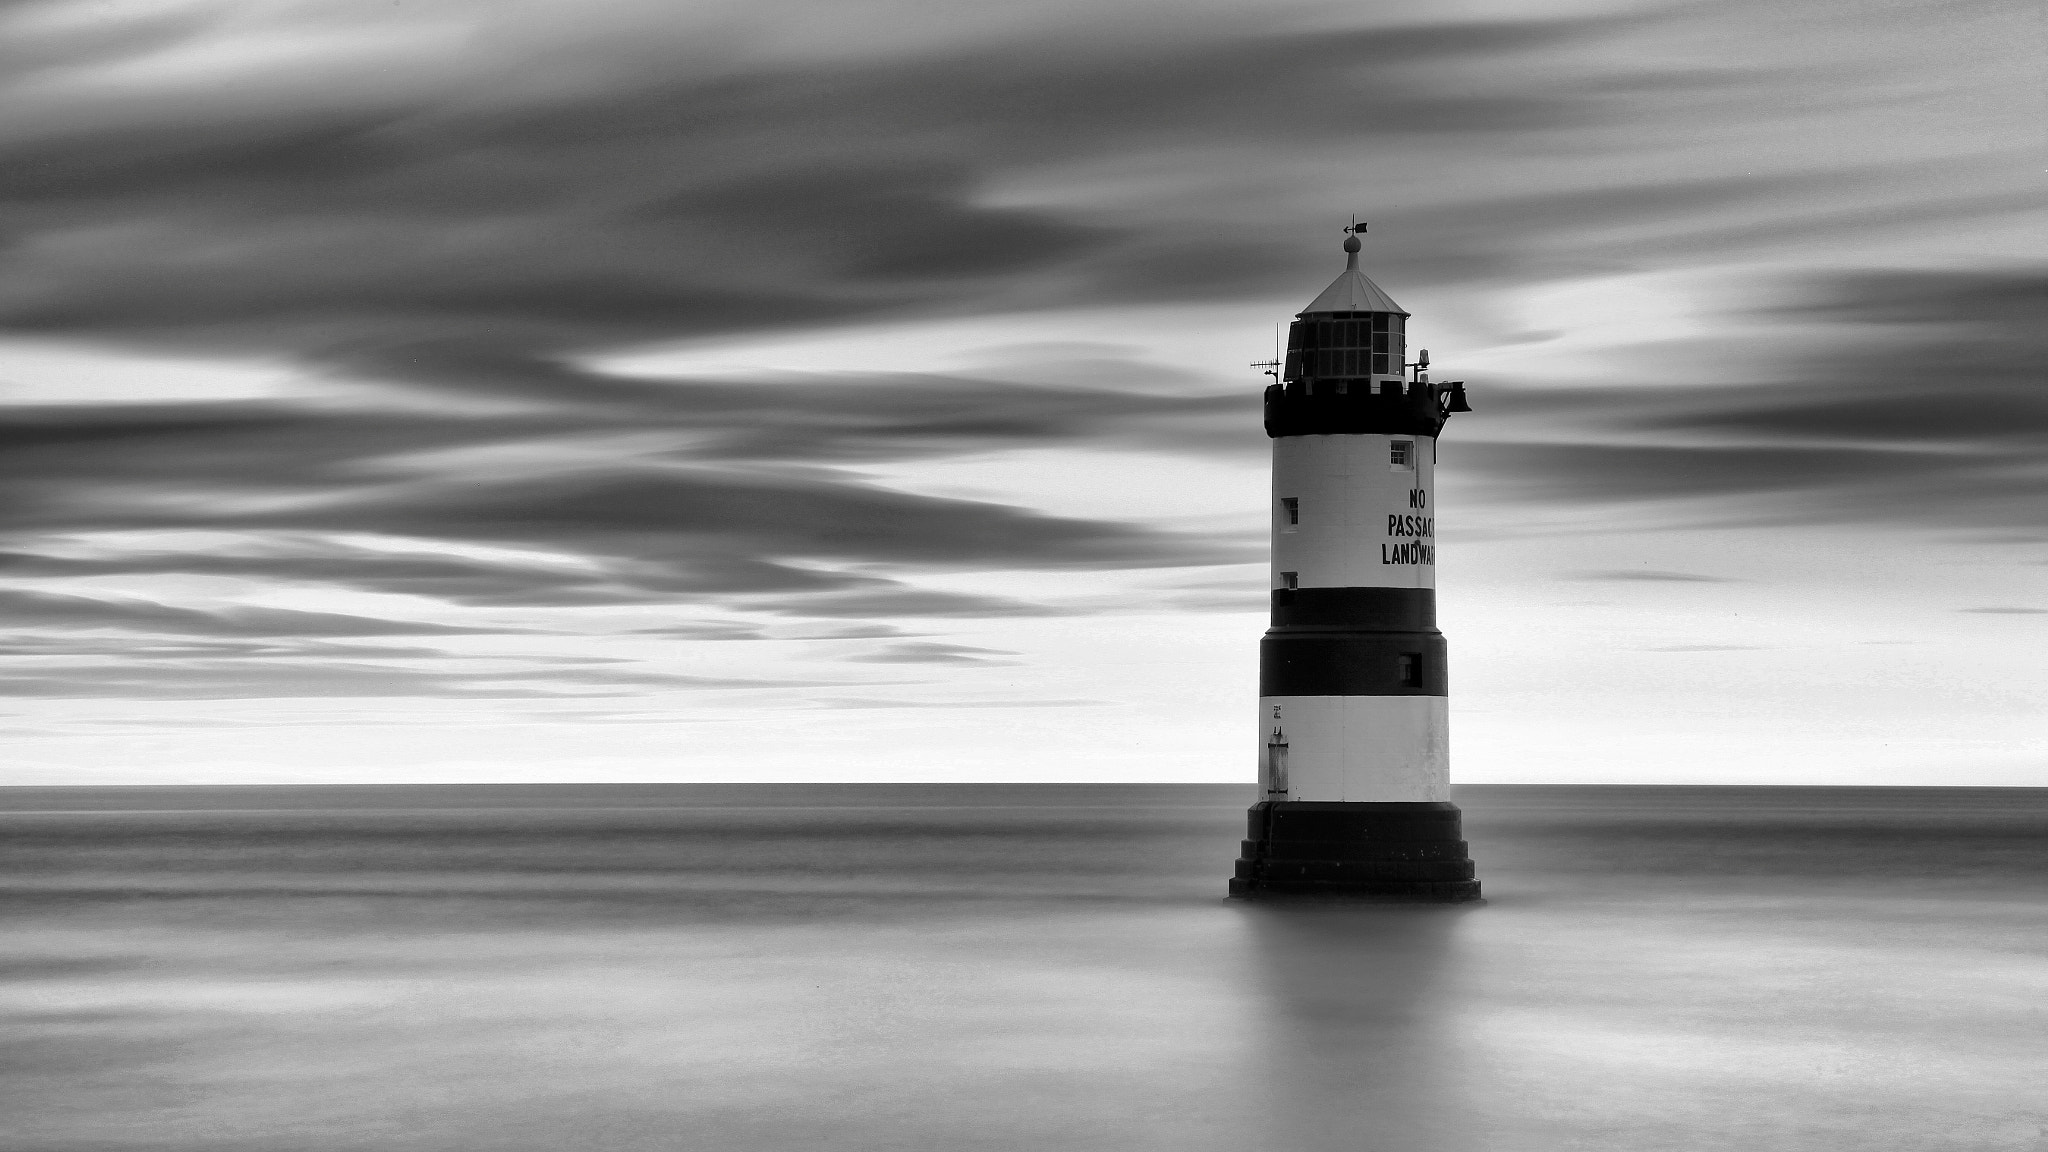 Photograph Lighthouse  by Fiacre Müller on 500px